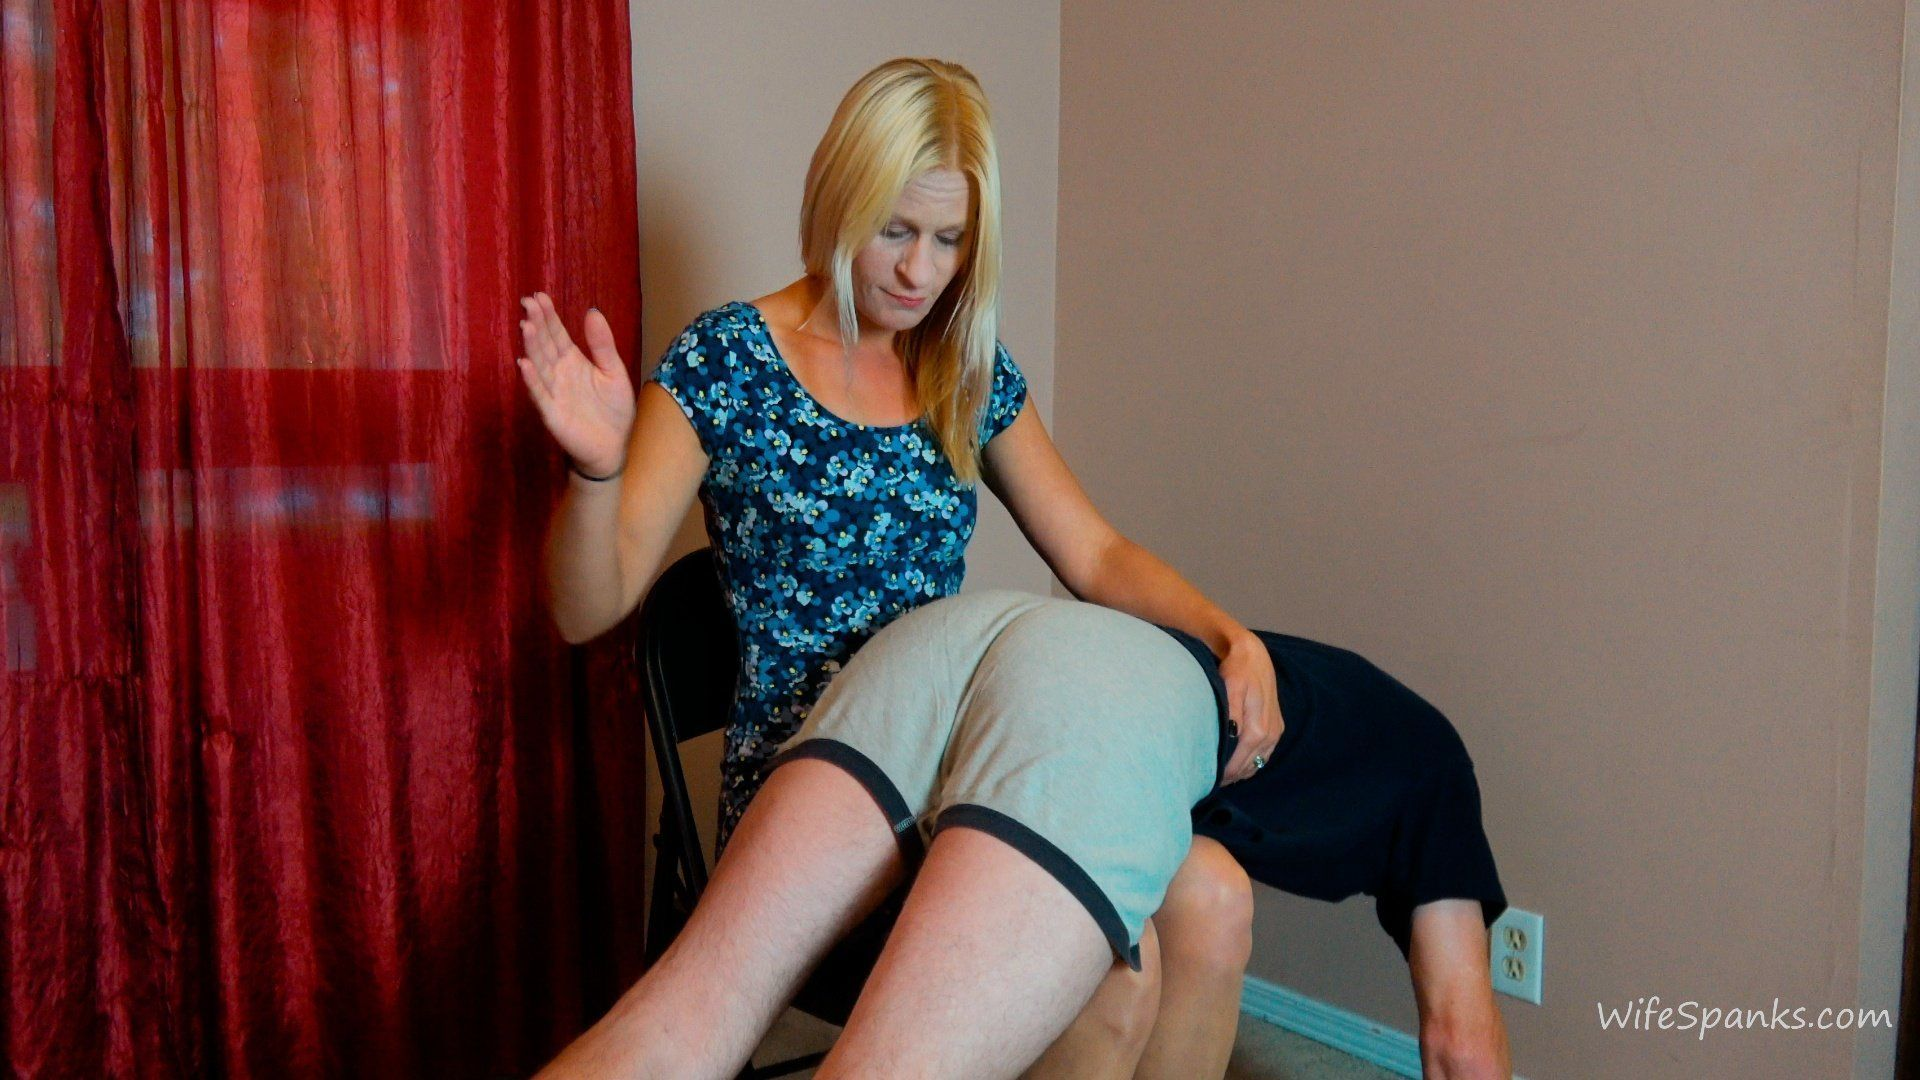 Accross her knee spank spank whack   Sex archive  Comments: 4